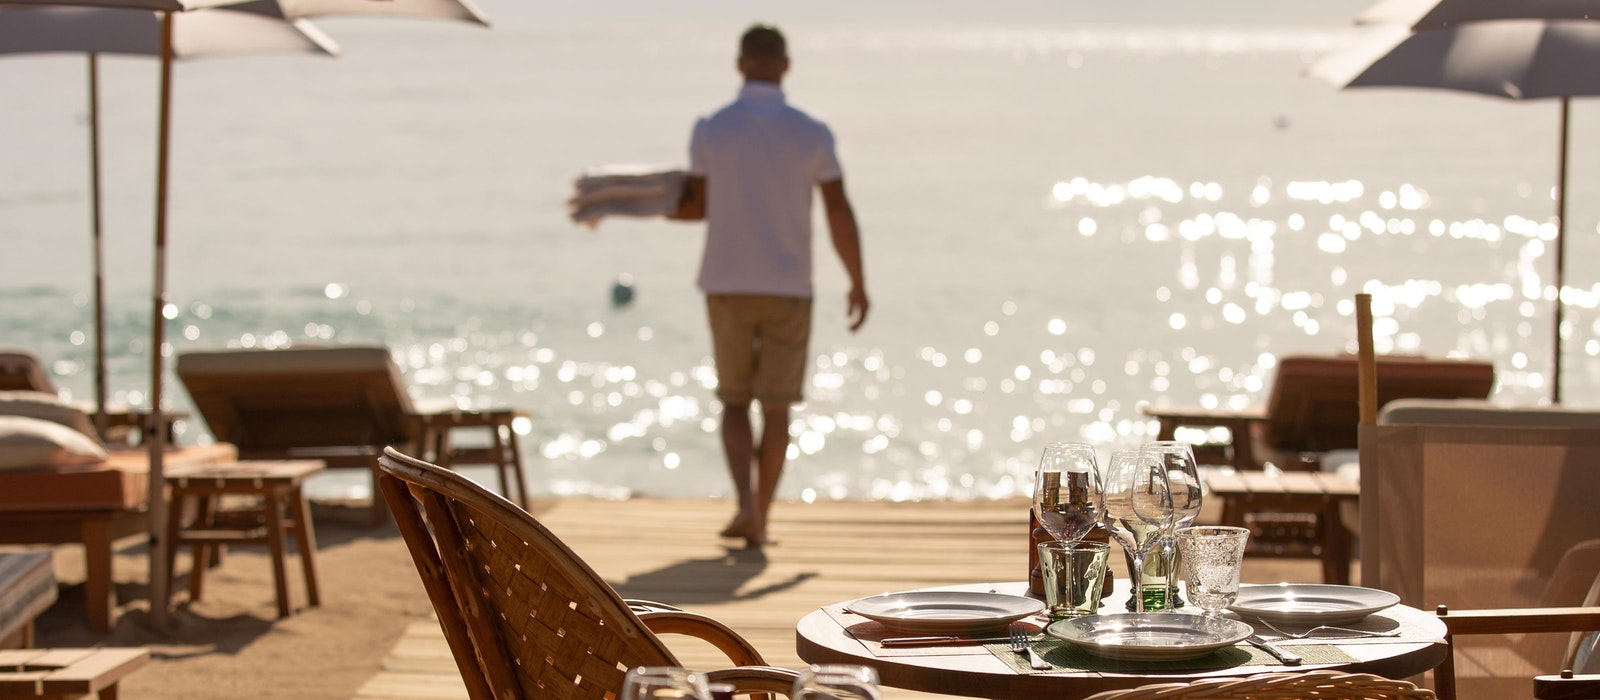 Find a table at La Réserve, order a glass of rosé, and watch the sun go down, St. Tropez-style.